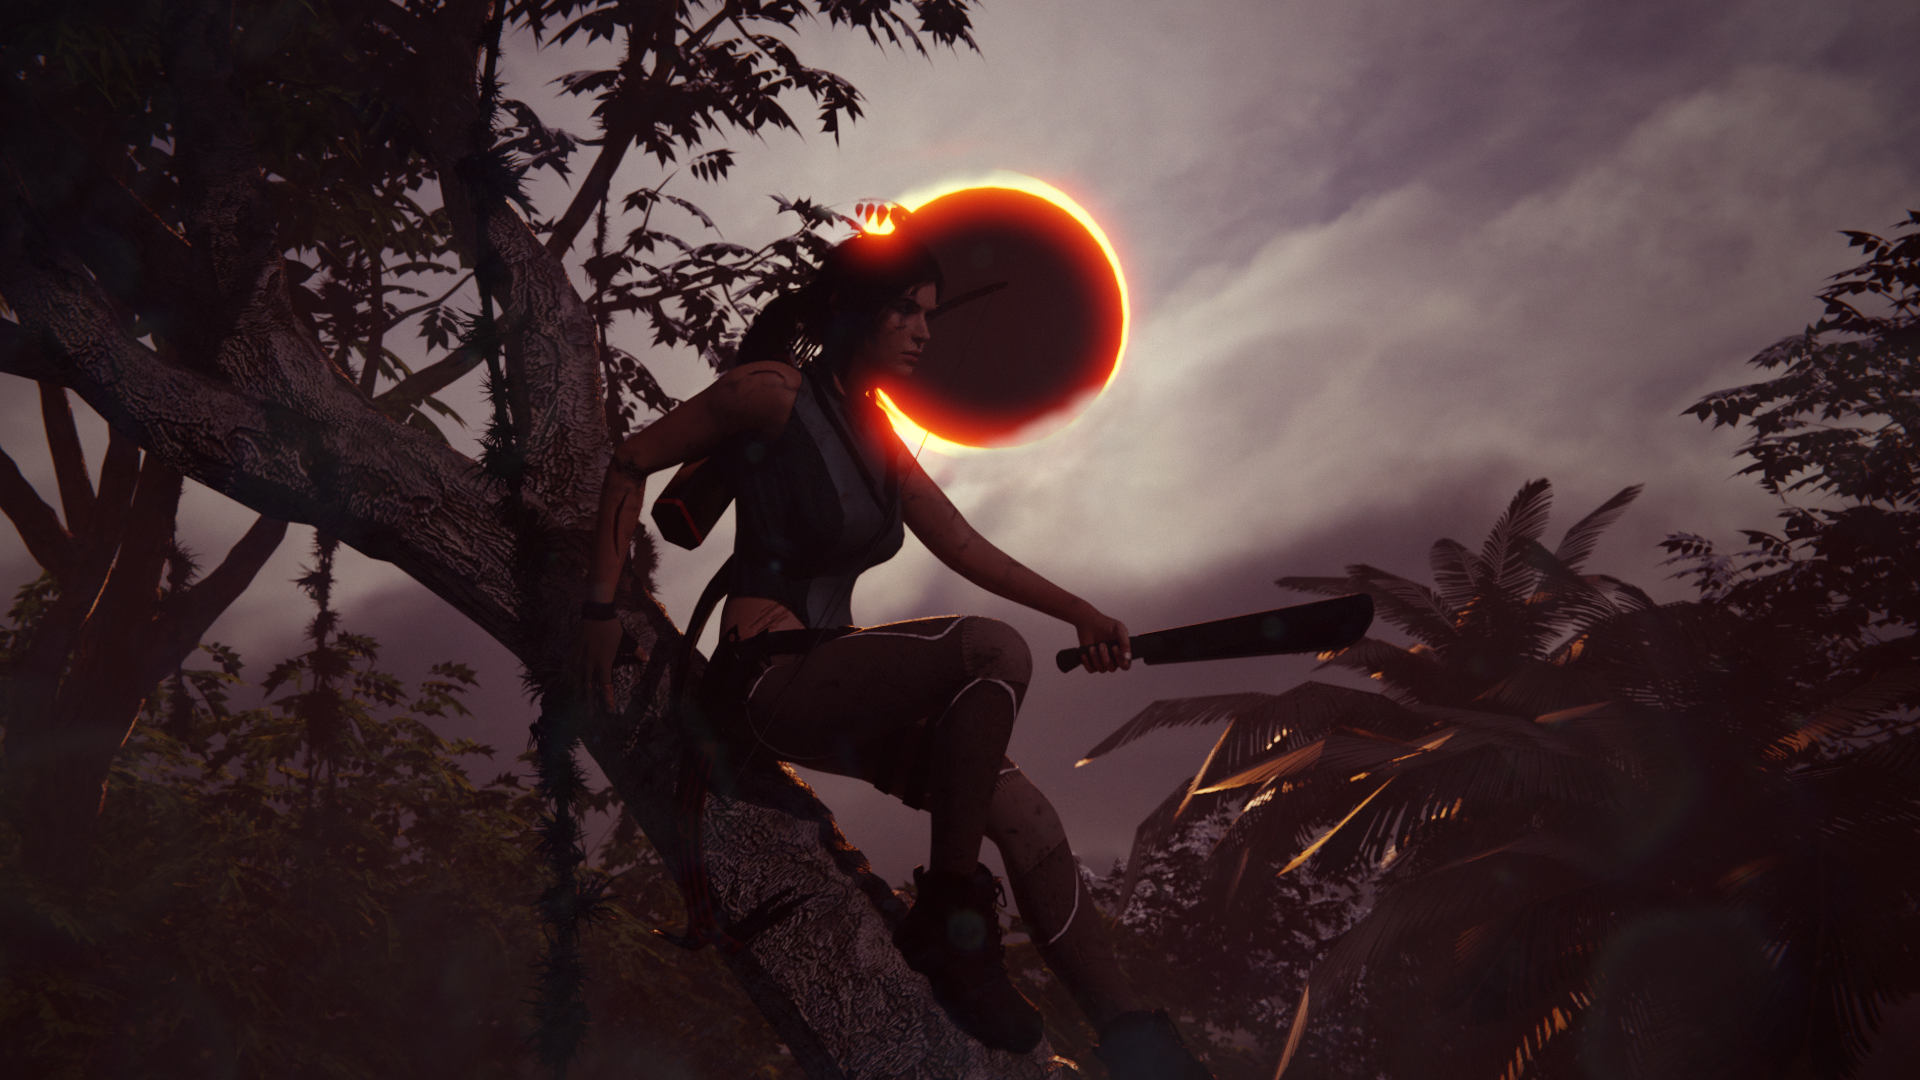 Shadow Of The Tomb Raider Wallpaper By Mandaloking On Deviantart